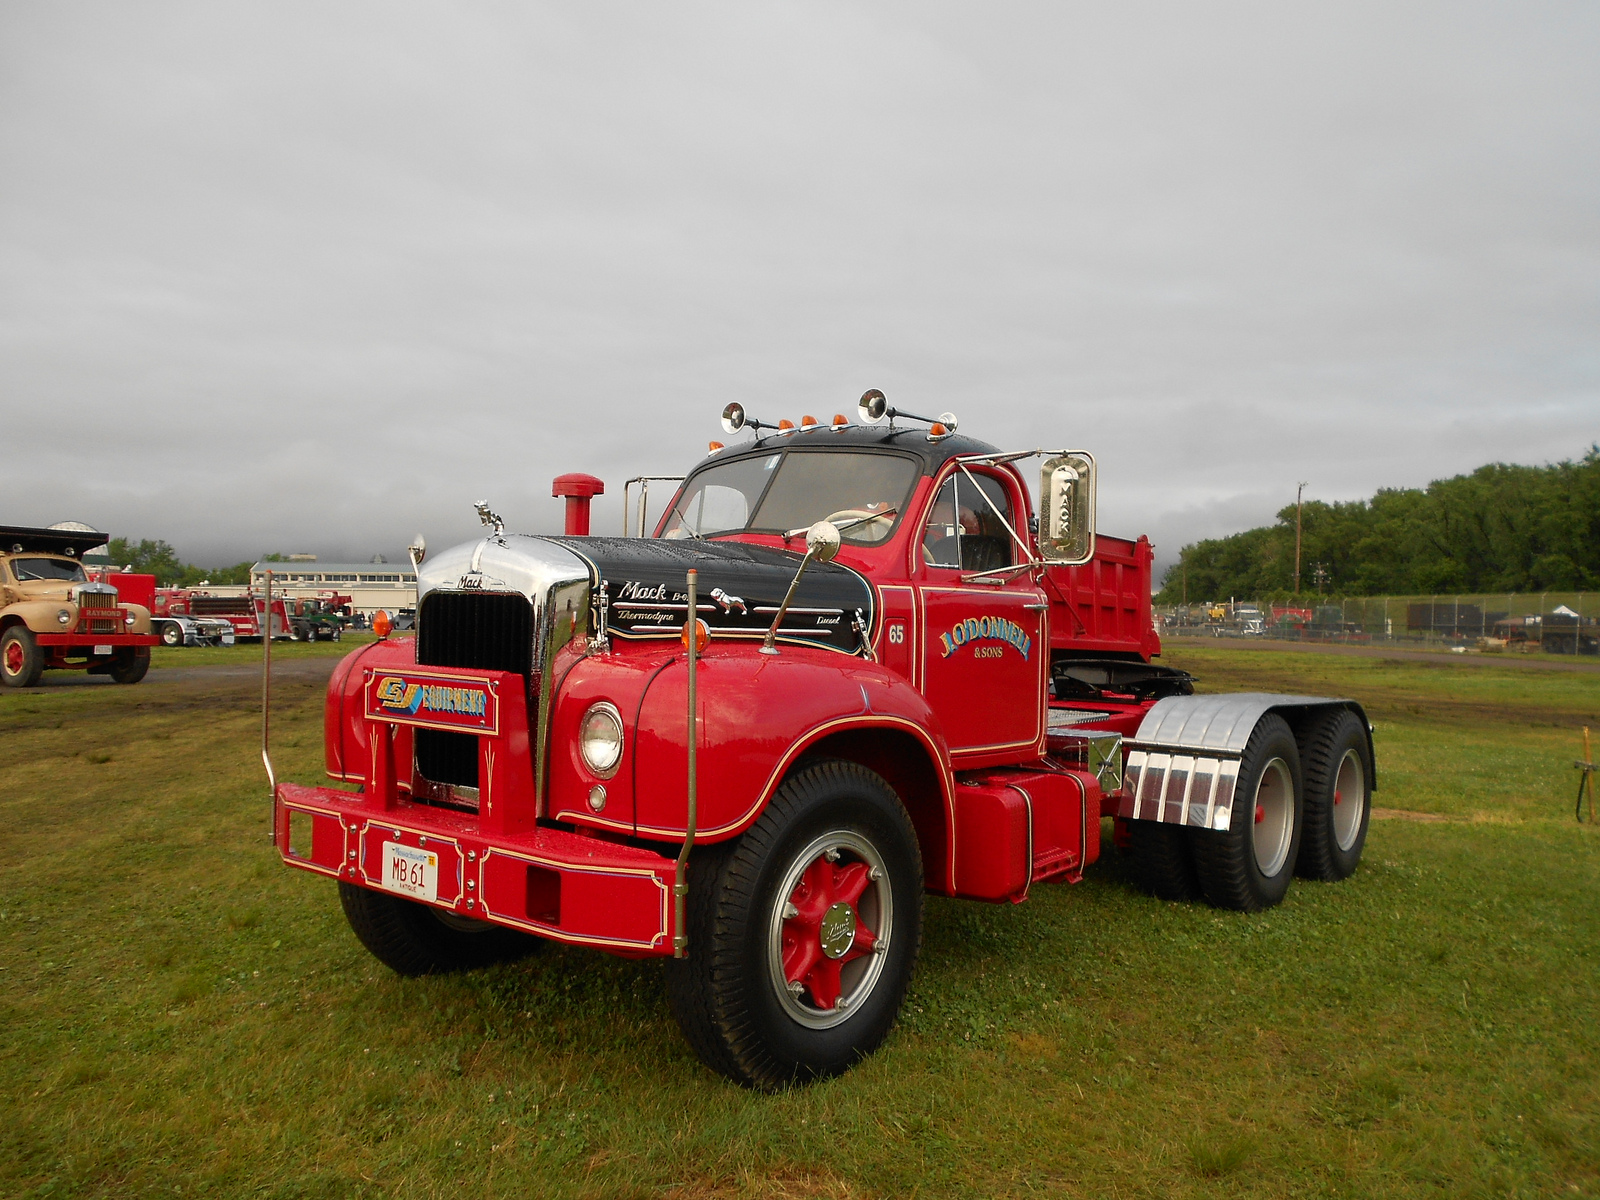 B Model For Sale Chelmsford MA Craigslist - Antique and ...